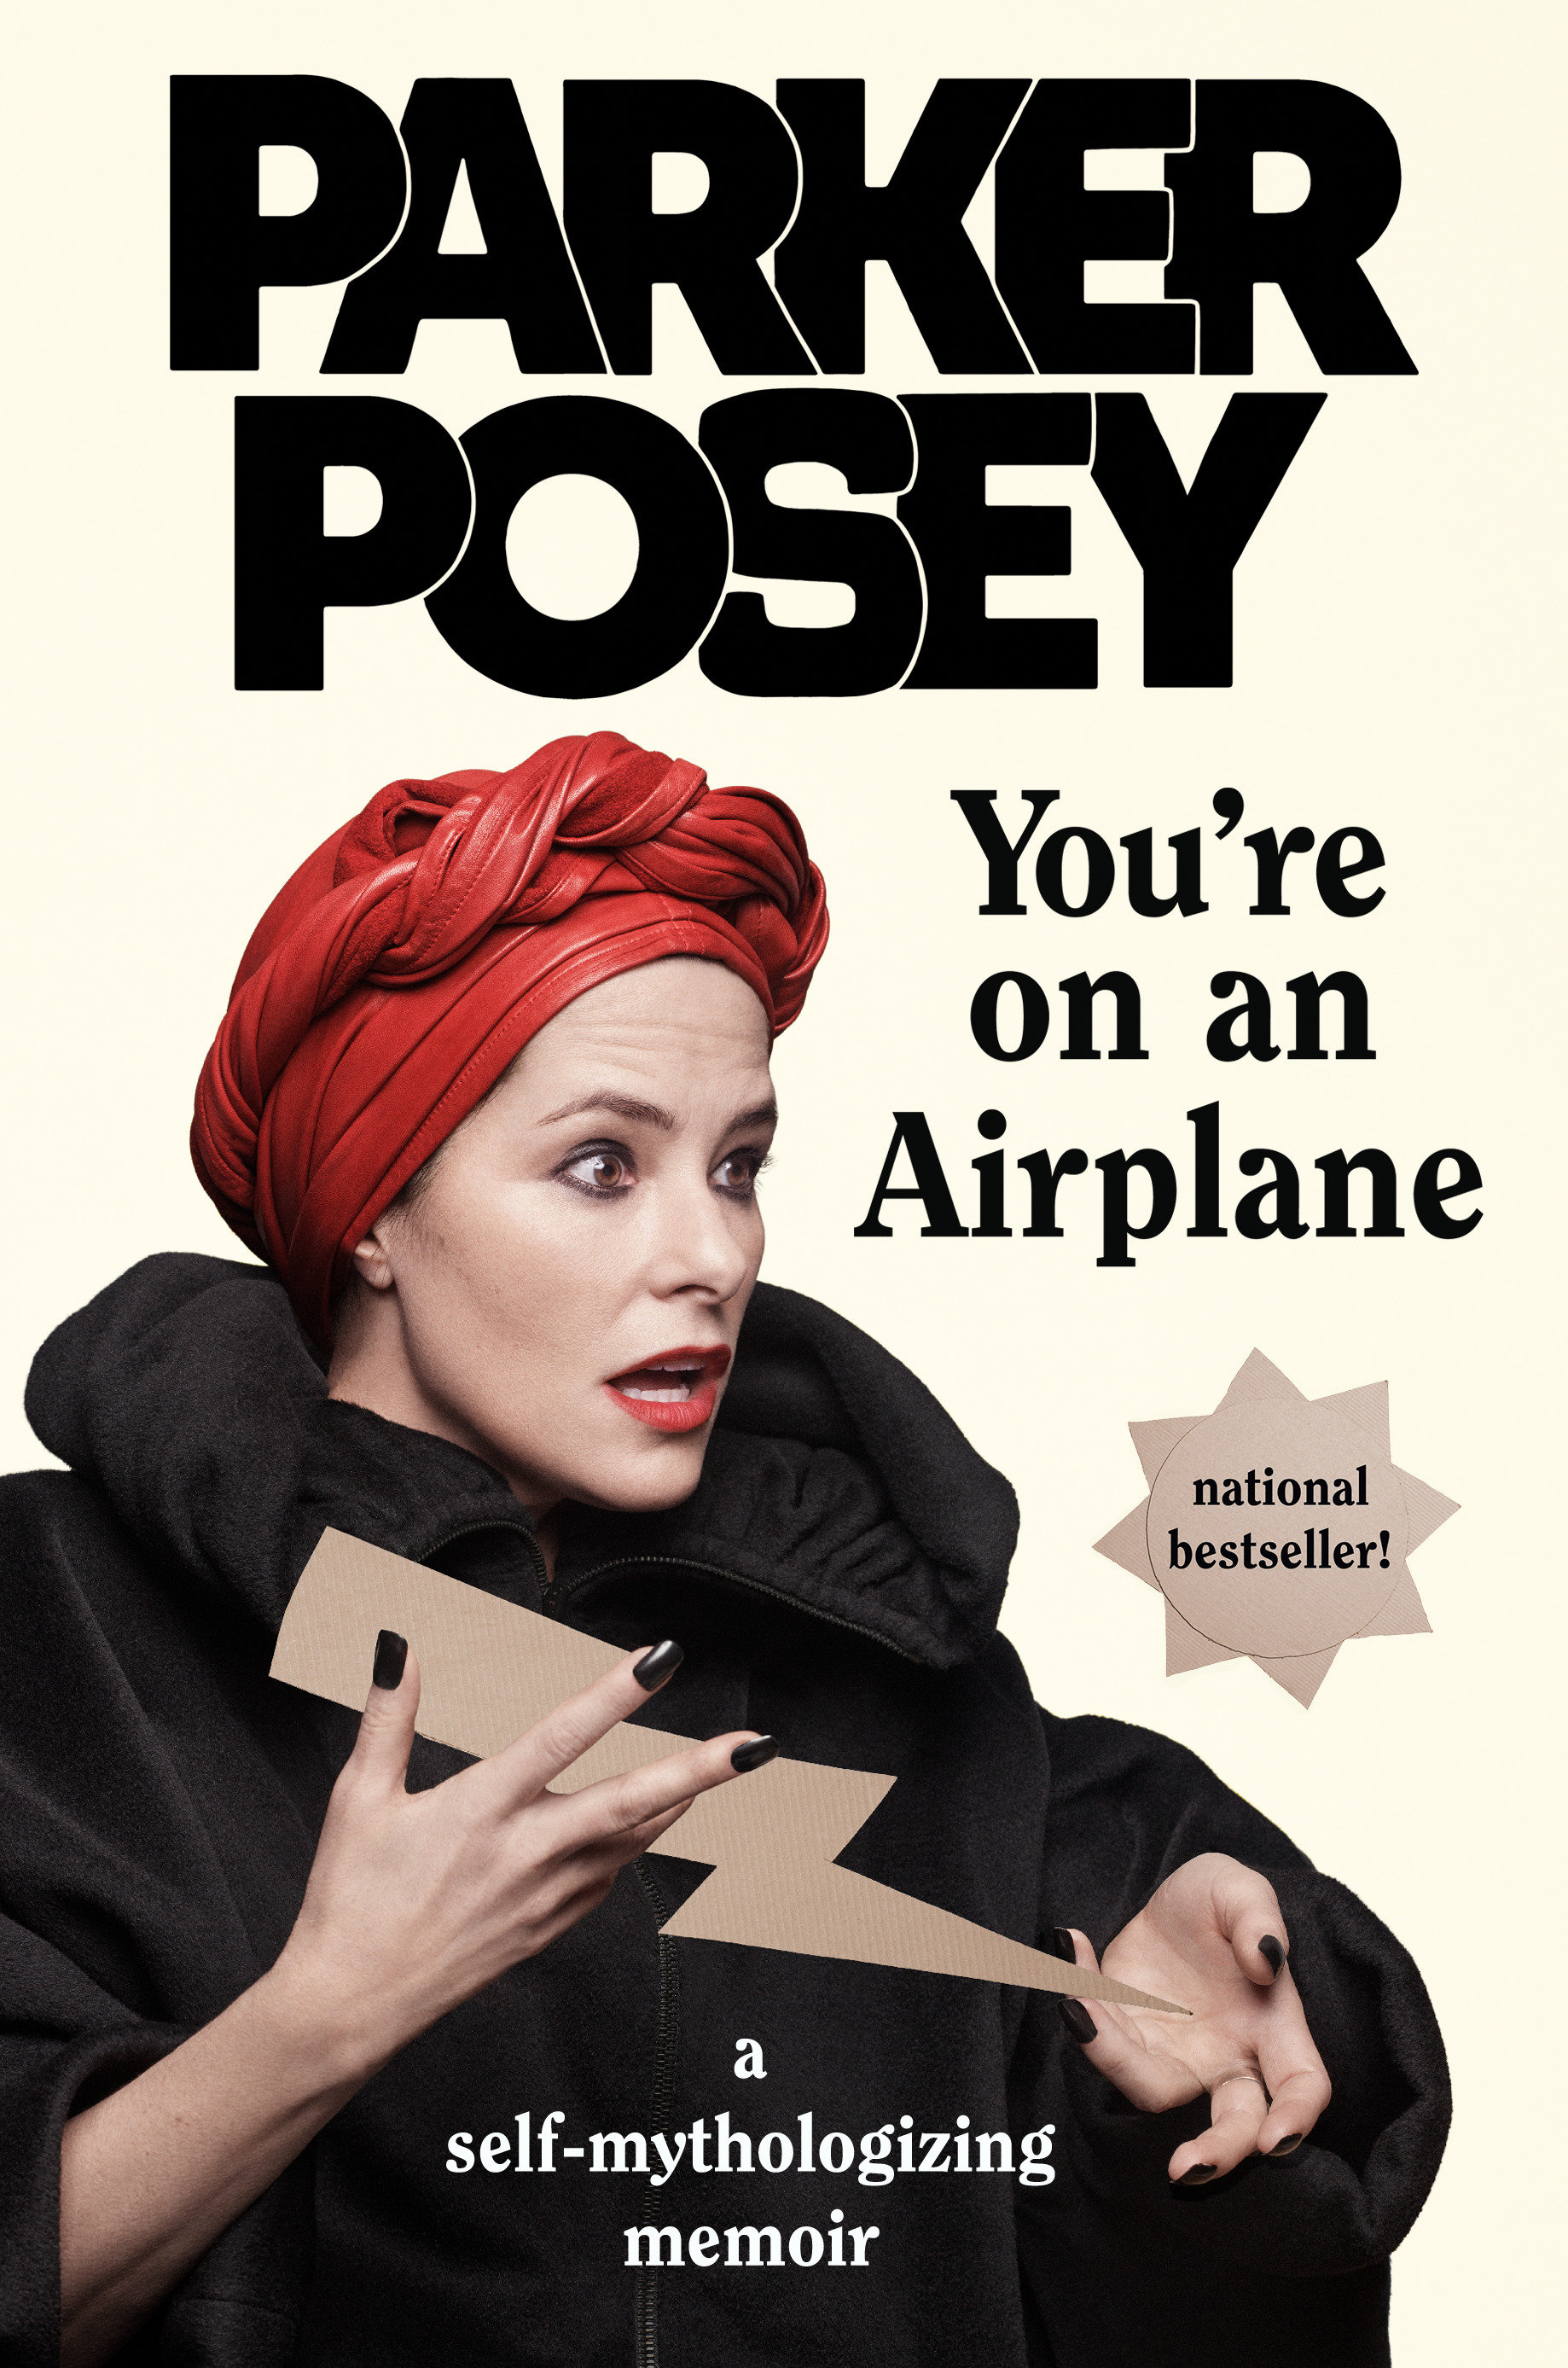 You're on an airplane a self-mythologizing memoir cover image